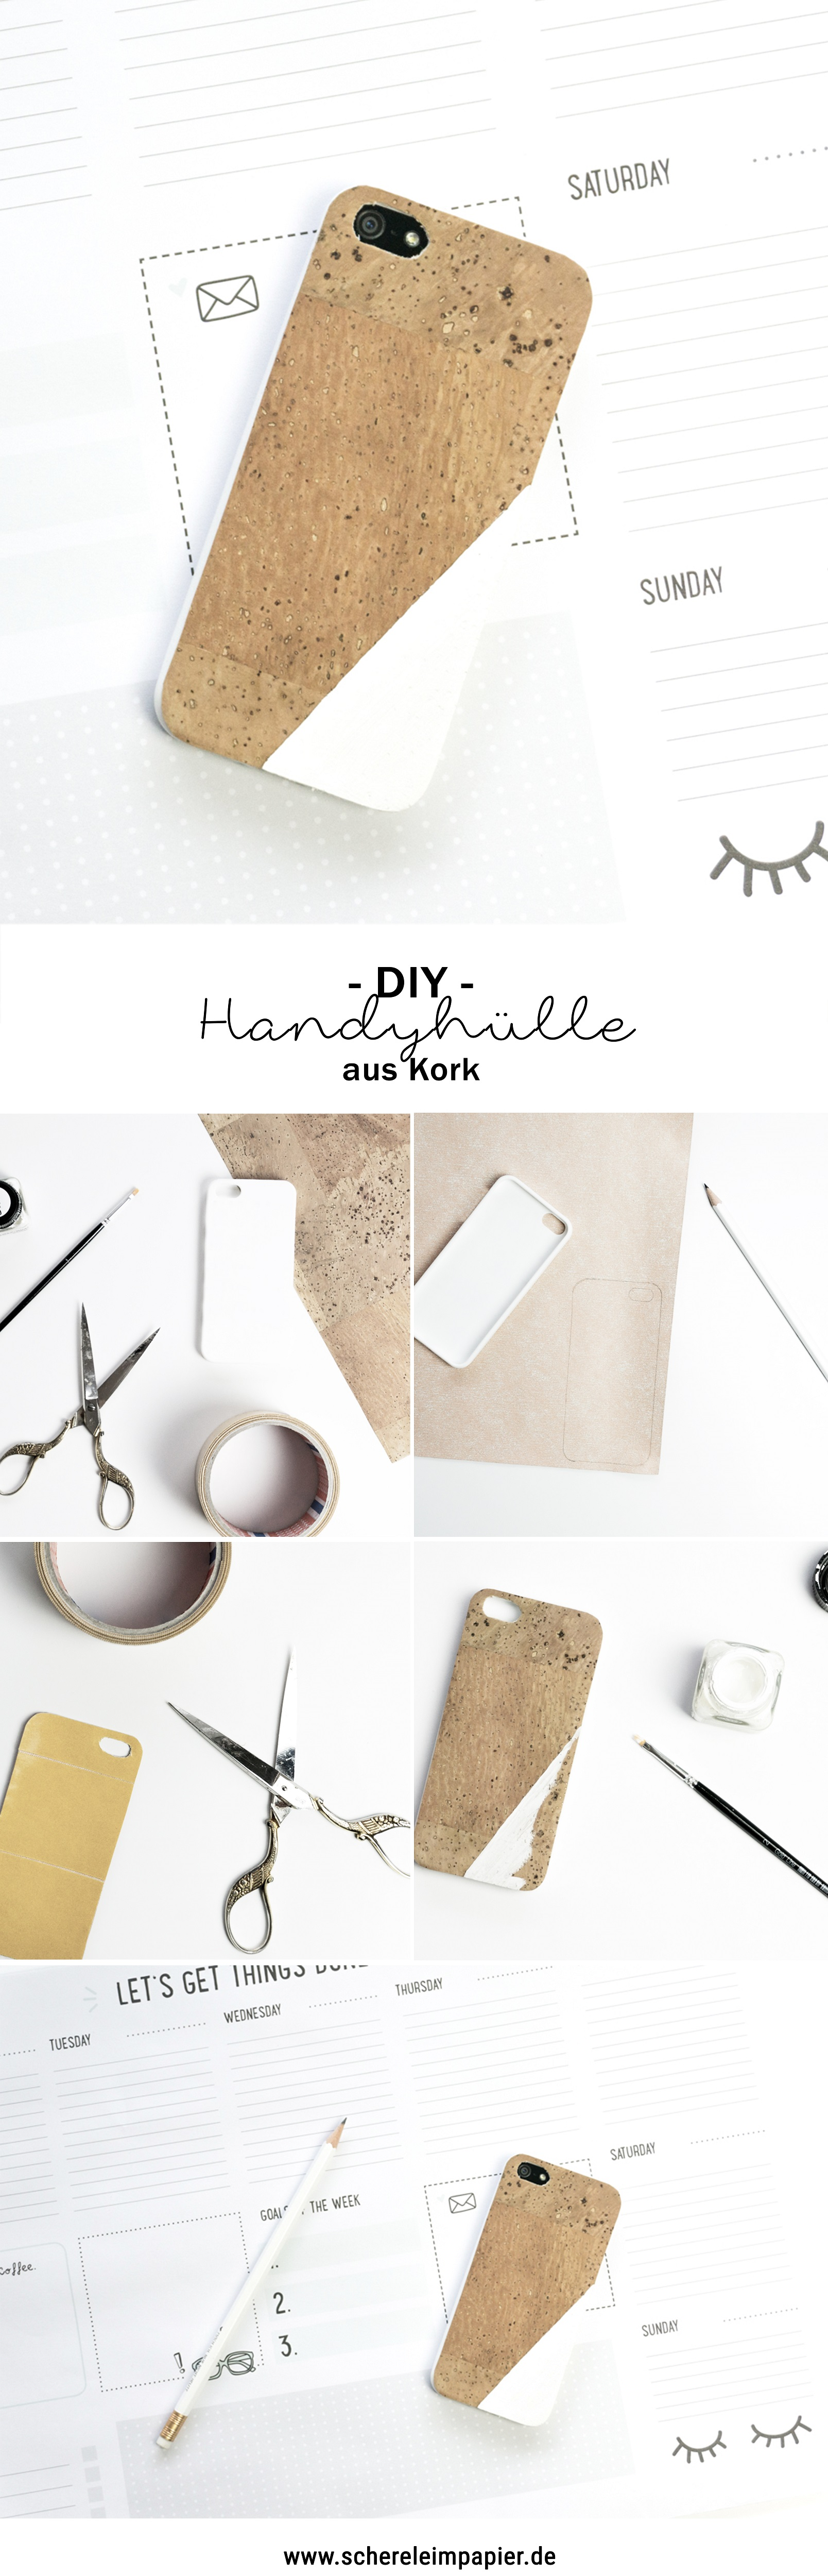 diy handyh lle aus kork selbstgemacht diy inspirationen. Black Bedroom Furniture Sets. Home Design Ideas